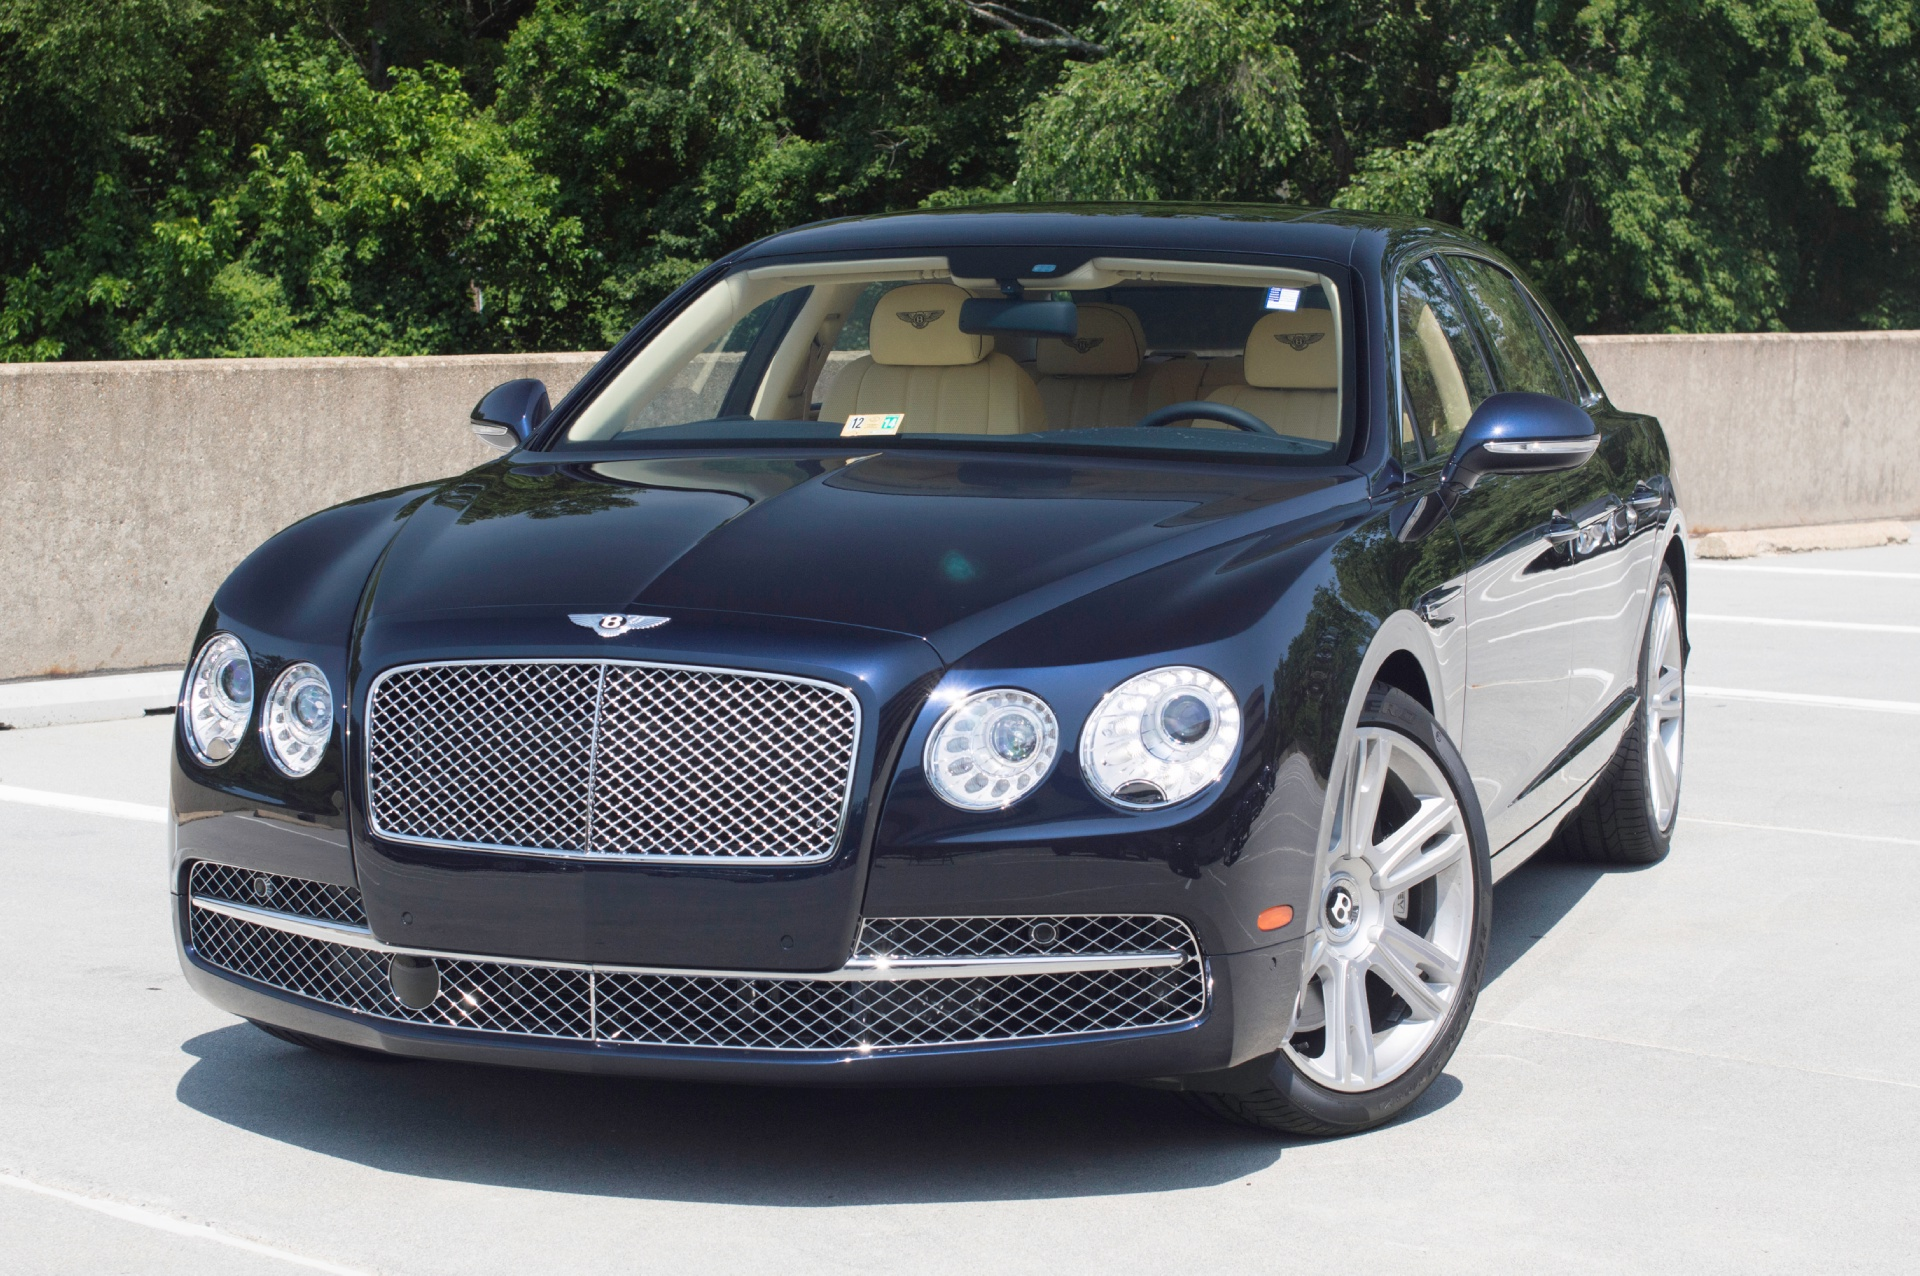 2014 Bentley Flying Spur W12 Stock 4n092231 For Sale Near Vienna Va Va Bentley Dealer For Sale In Vienna Va 4n092231 Exclusive Automotive Group